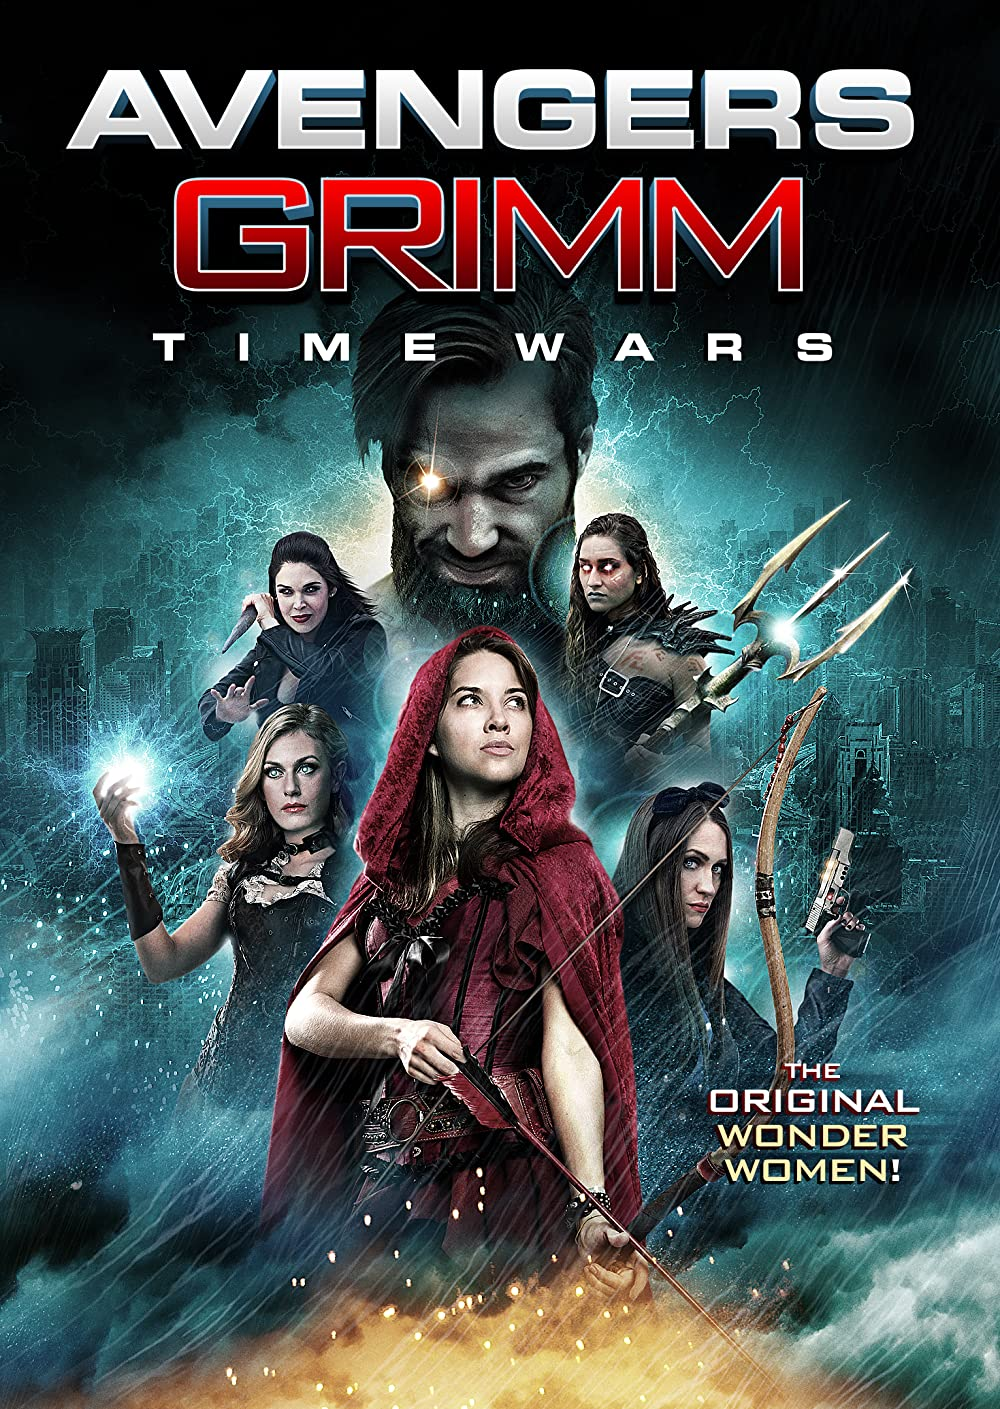 Avengers Grimm: Time Wars 2018 Hindi Dual Audio 530MB BluRay x264